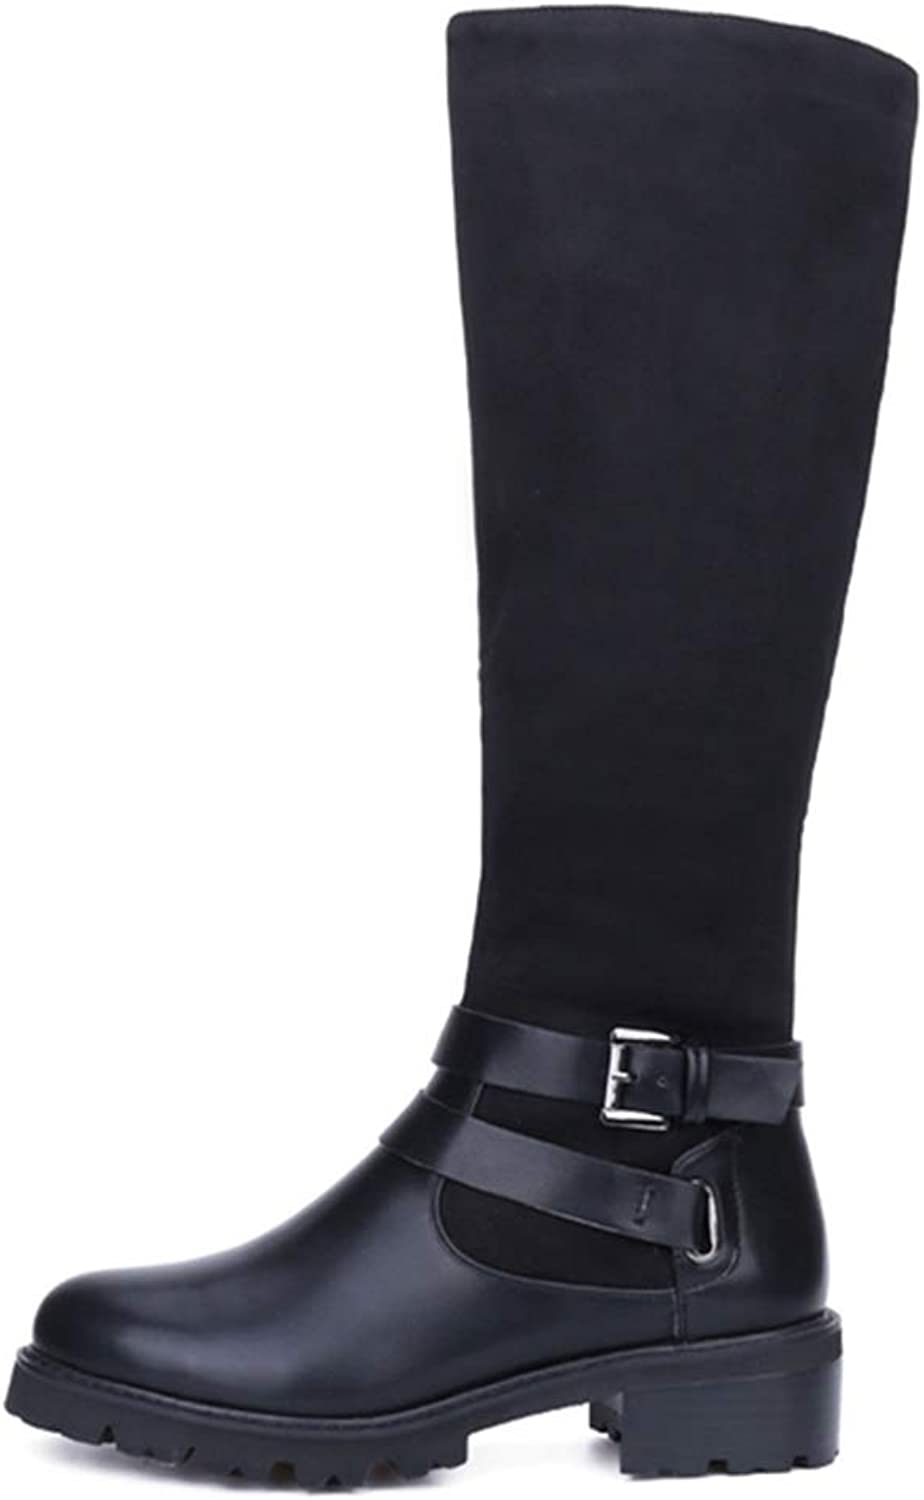 T-JULY Women's Winter shoes Knee High Boots Plus Size Quality Genuine Leather Brand Heels Snow Boots